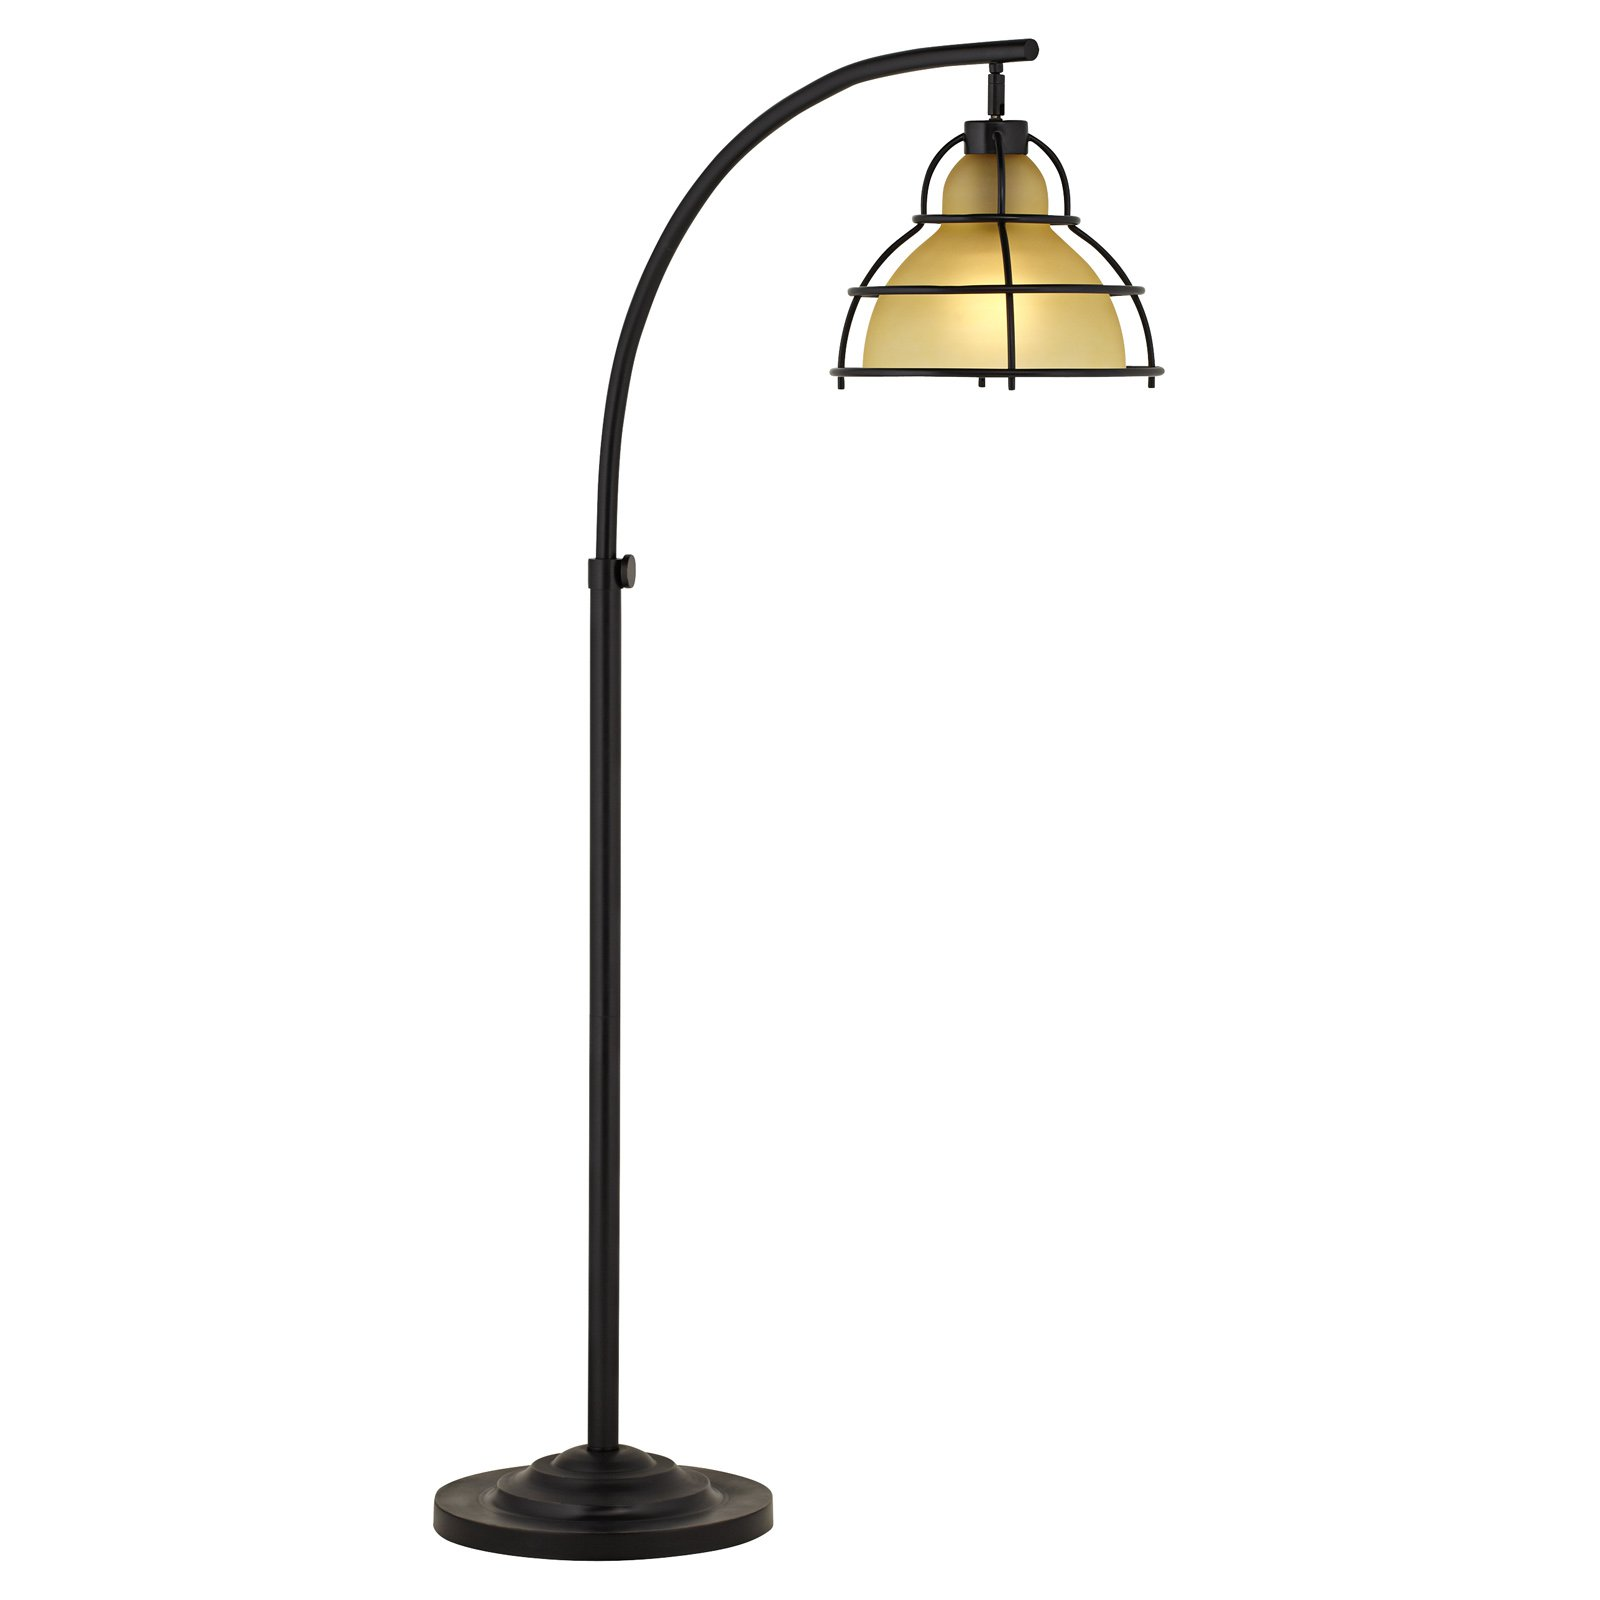 downbridge floor lamp photo - 6